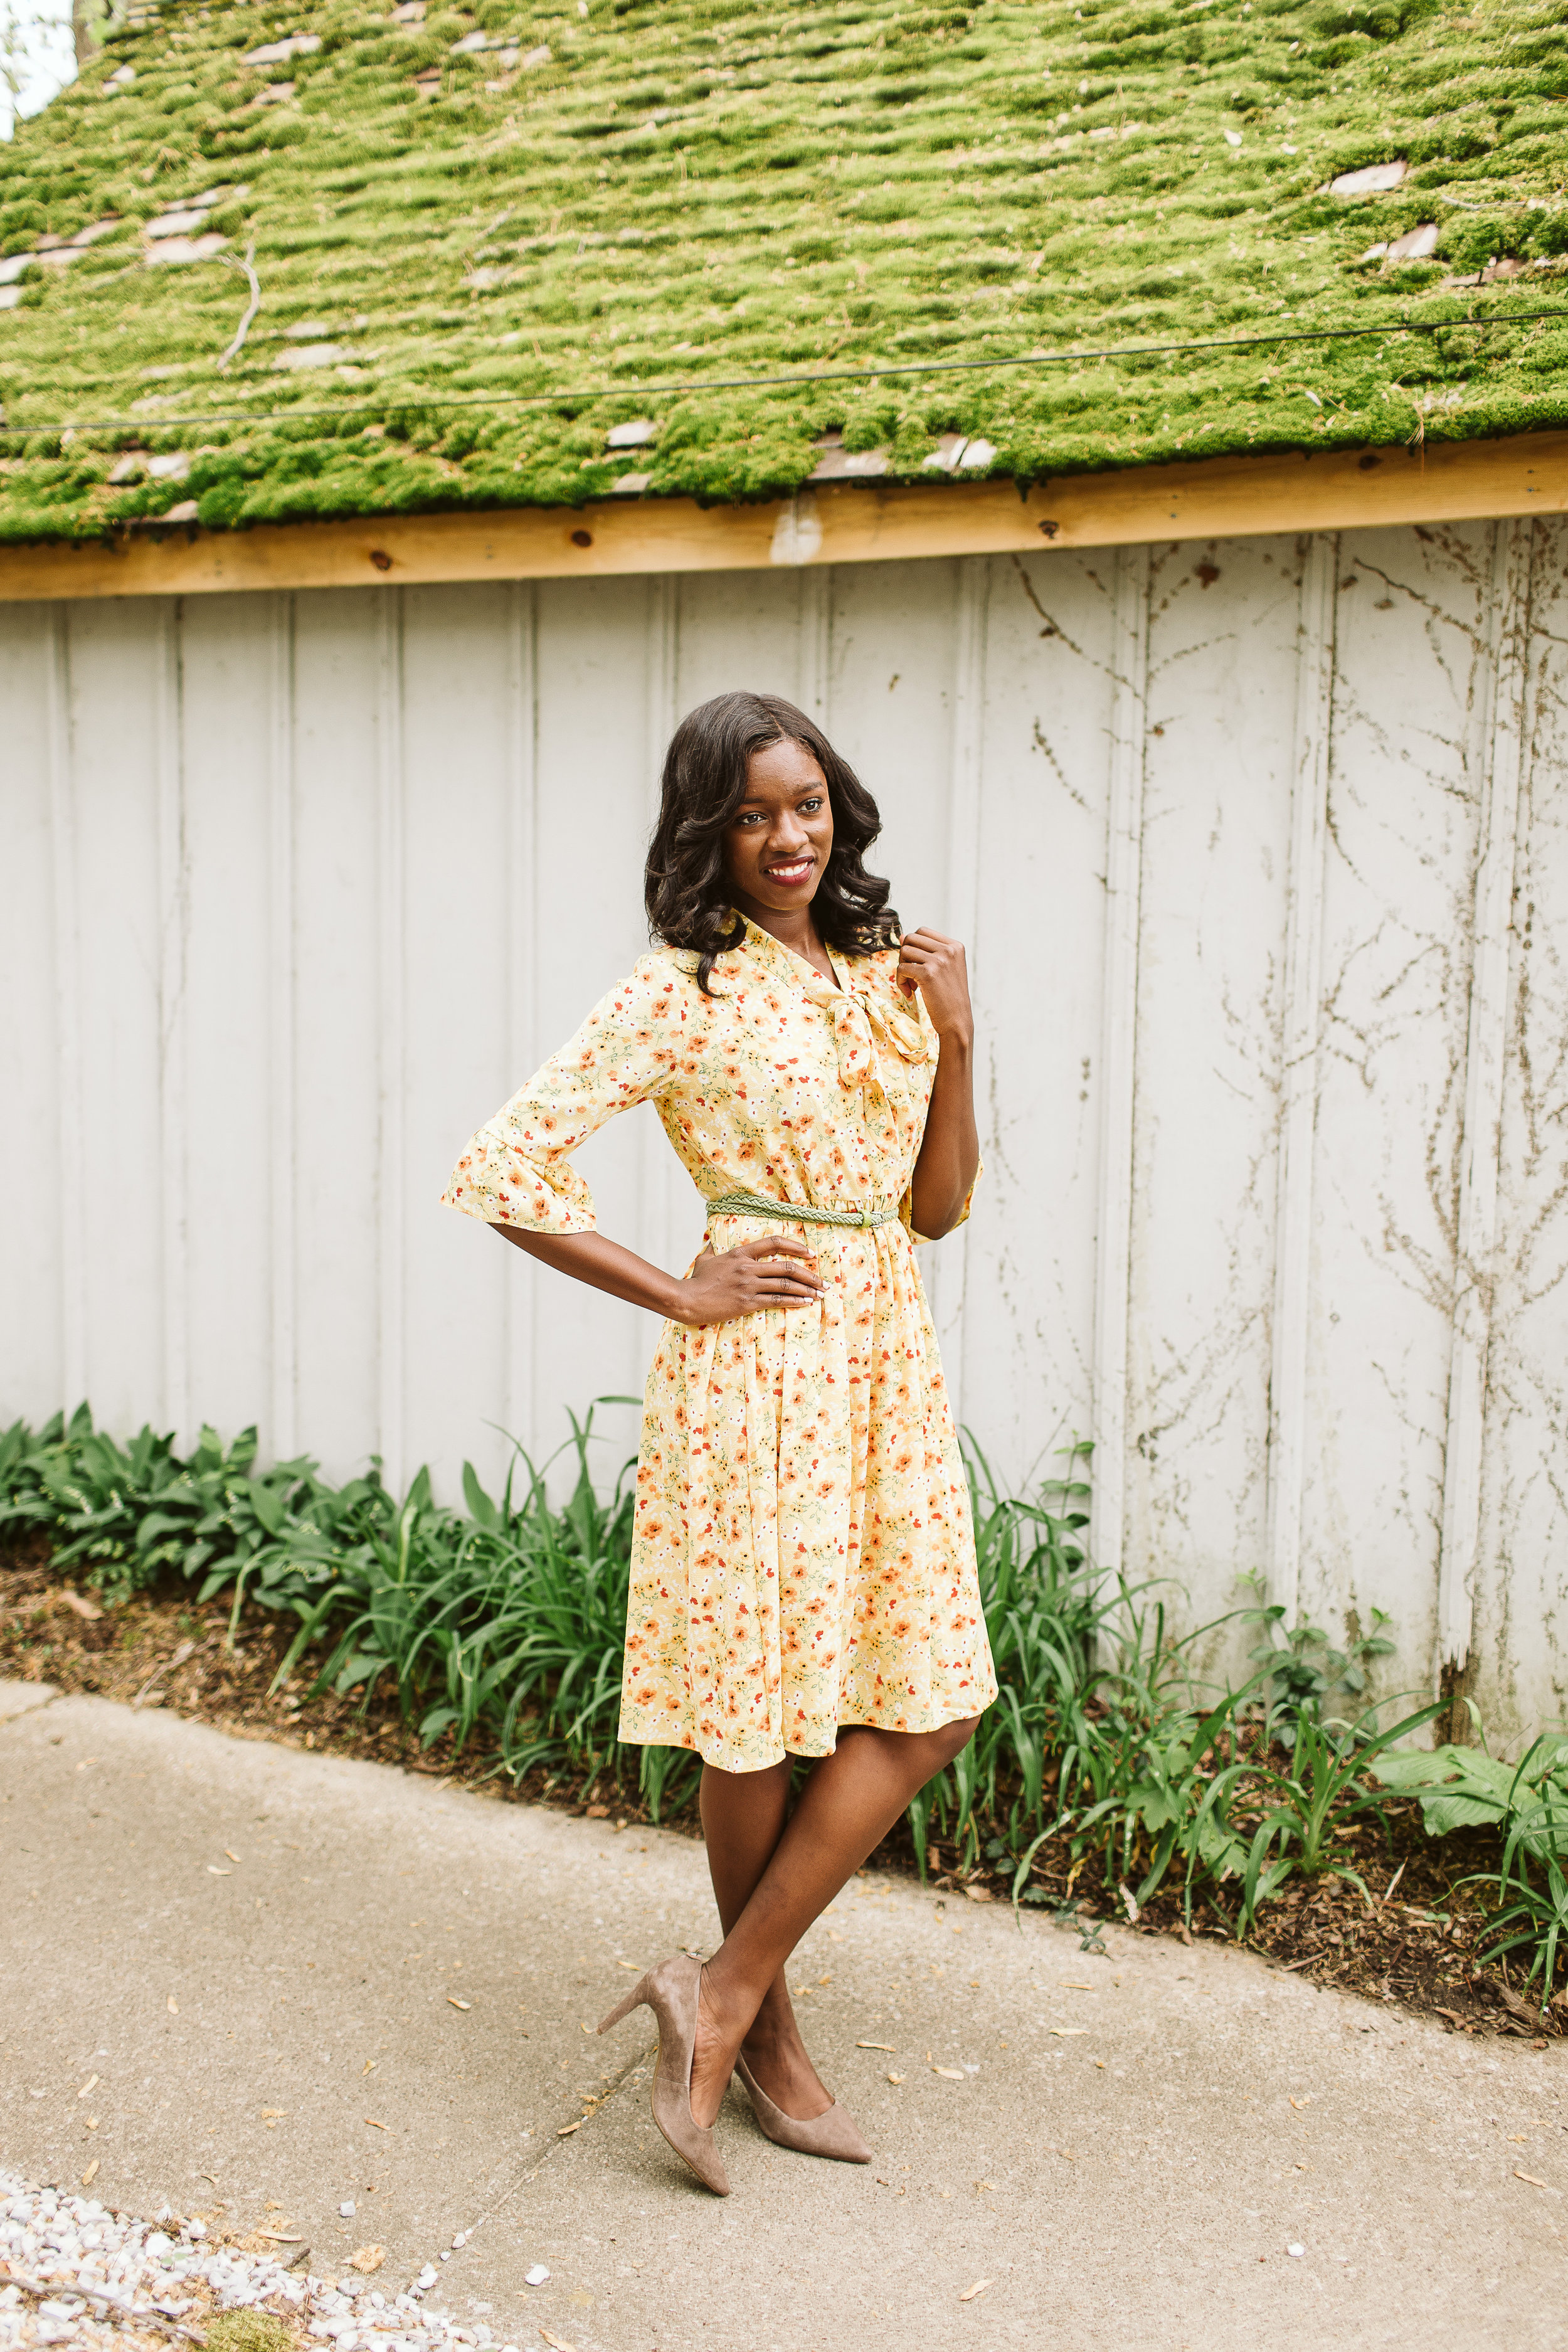 Cherelle wears the  Mustard Babydoll Dress . Available at Simple Extravagance for $35.